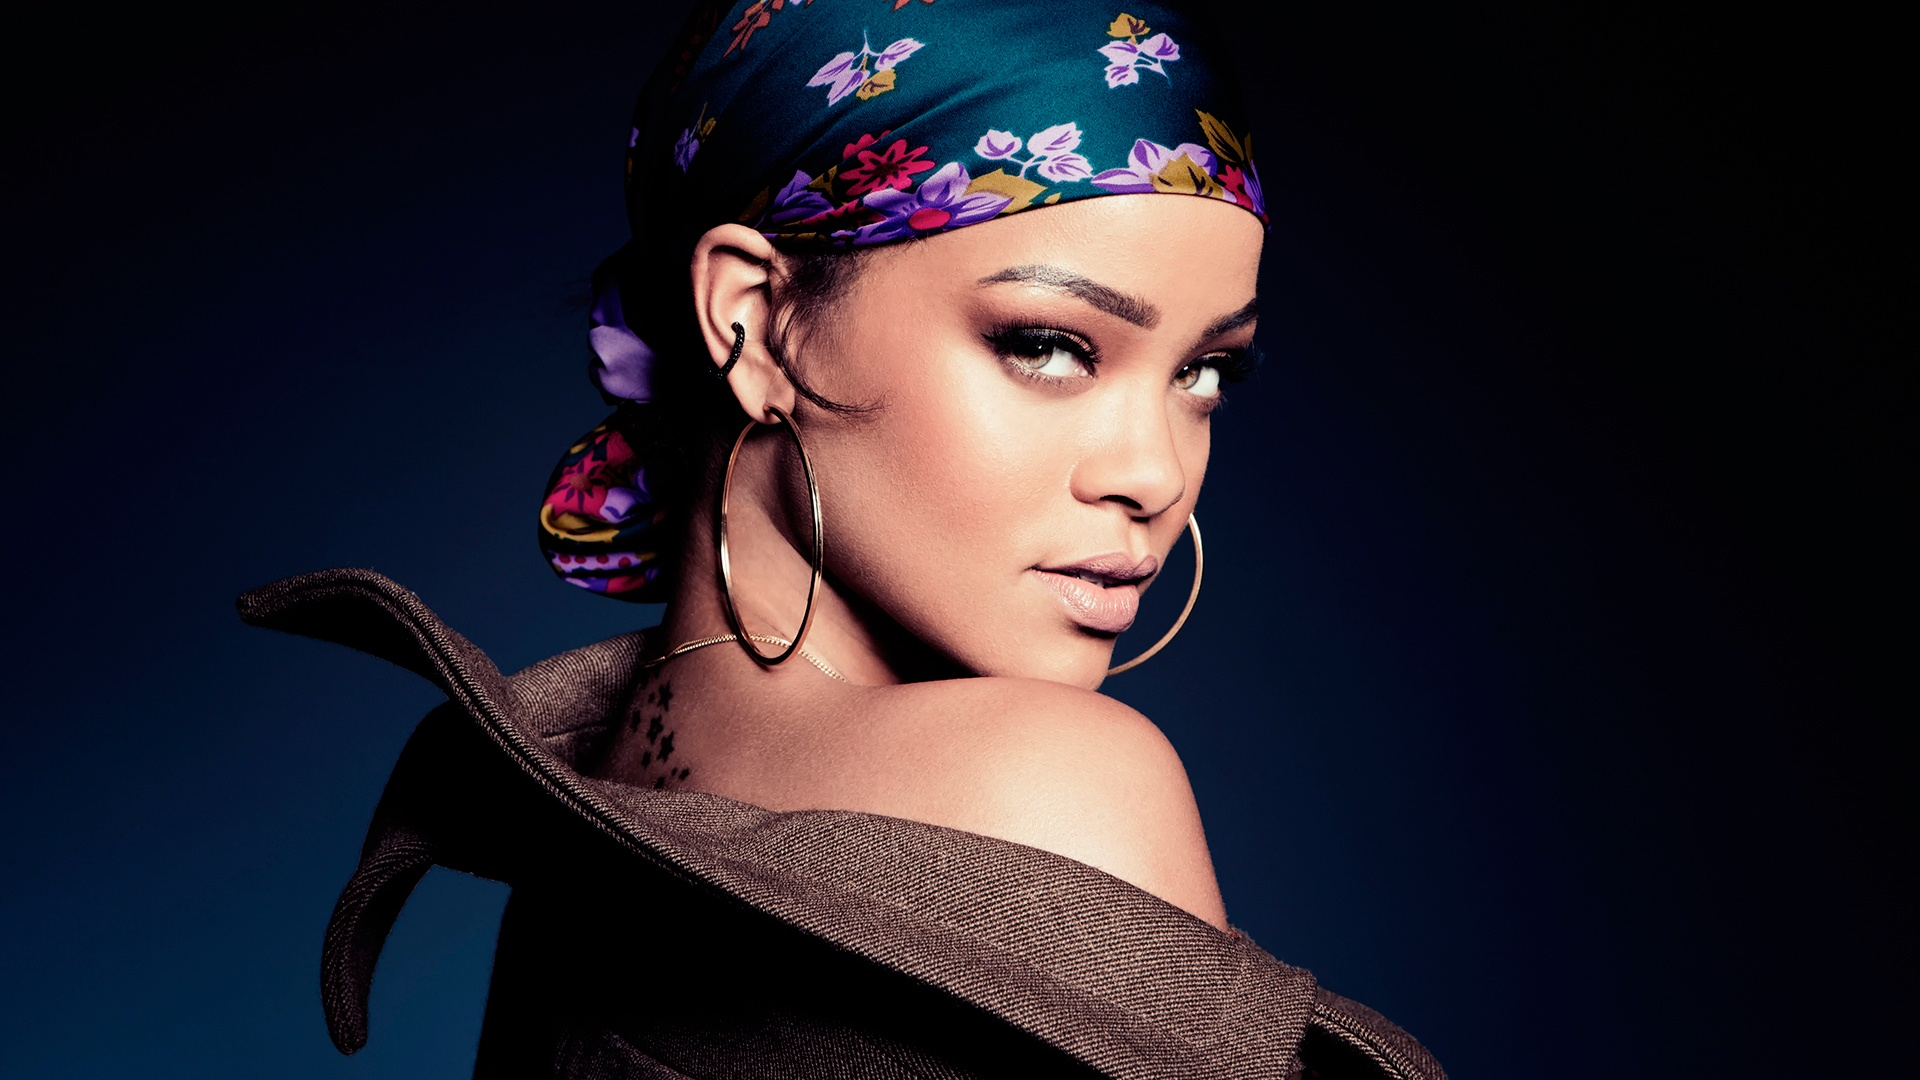 rihanna wallpapers hd A10